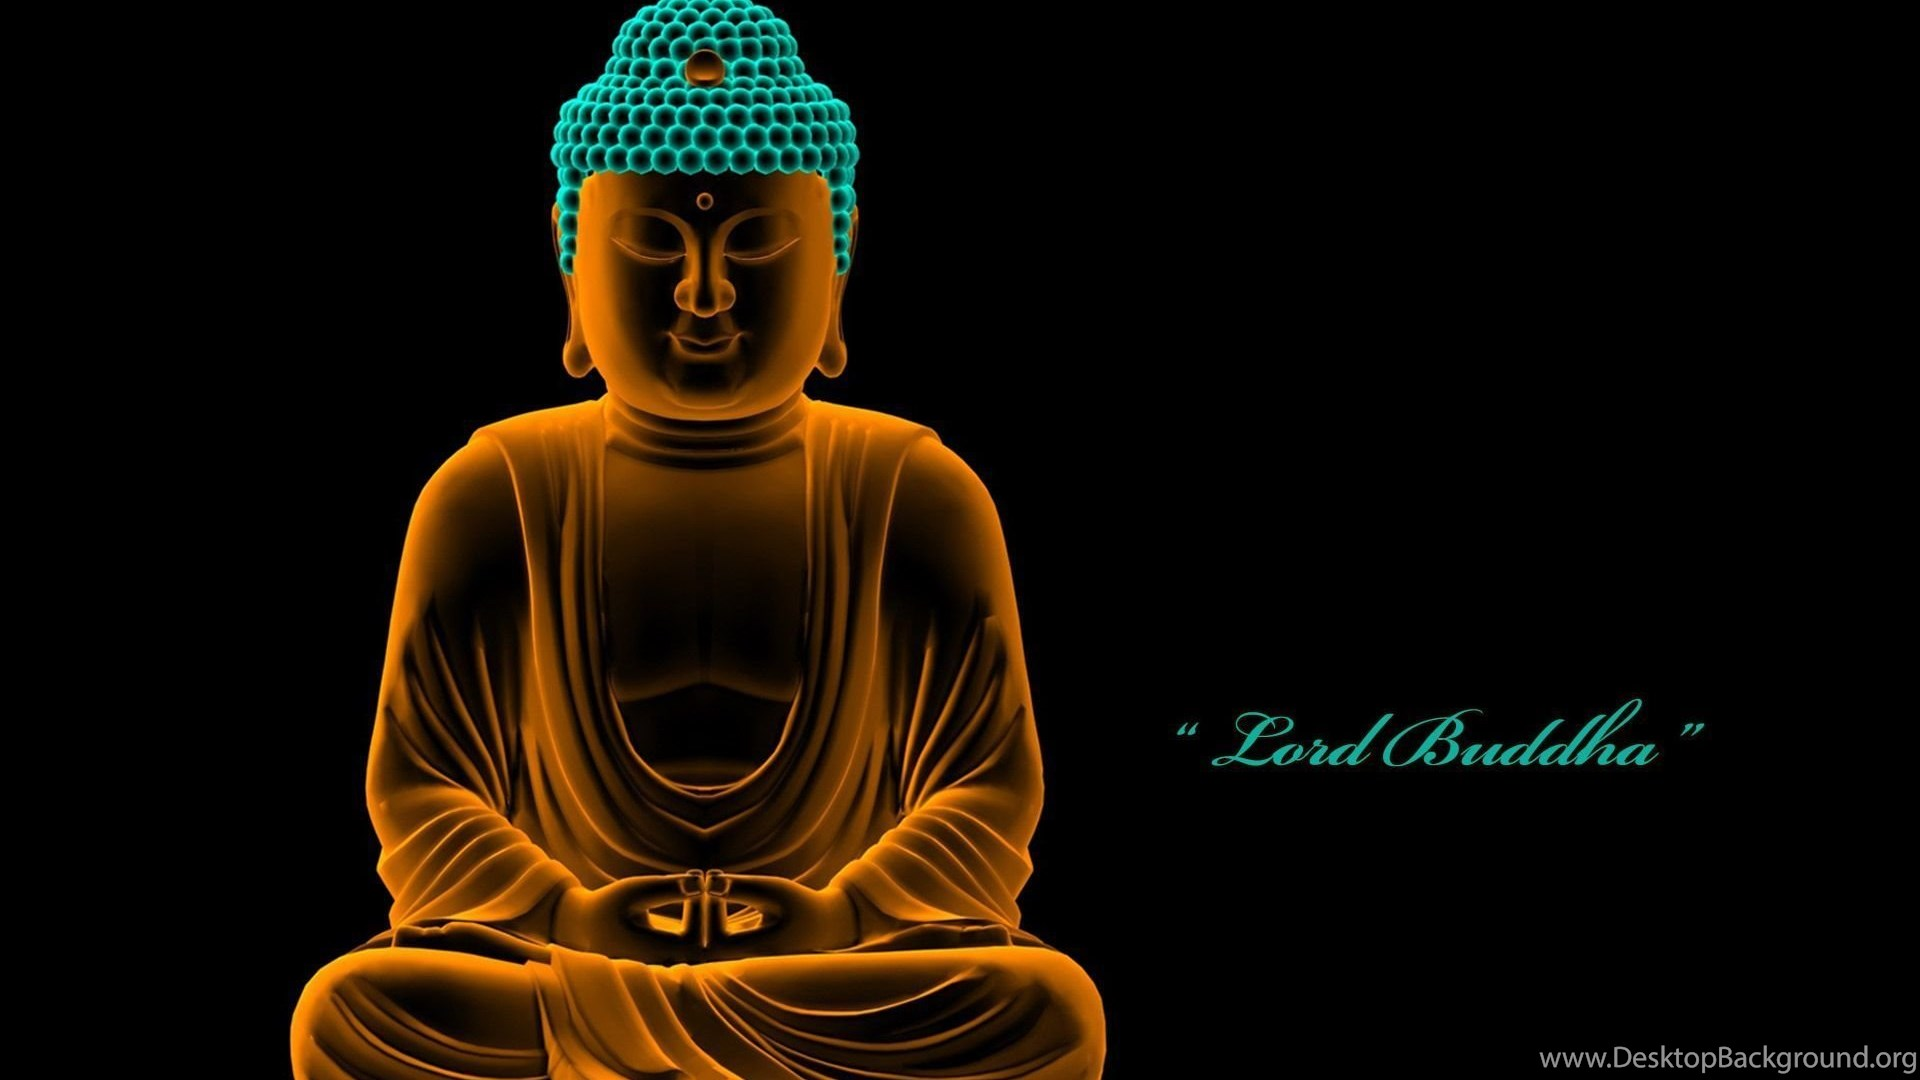 Buddha Desktop Wallpapers HD Lovely Background